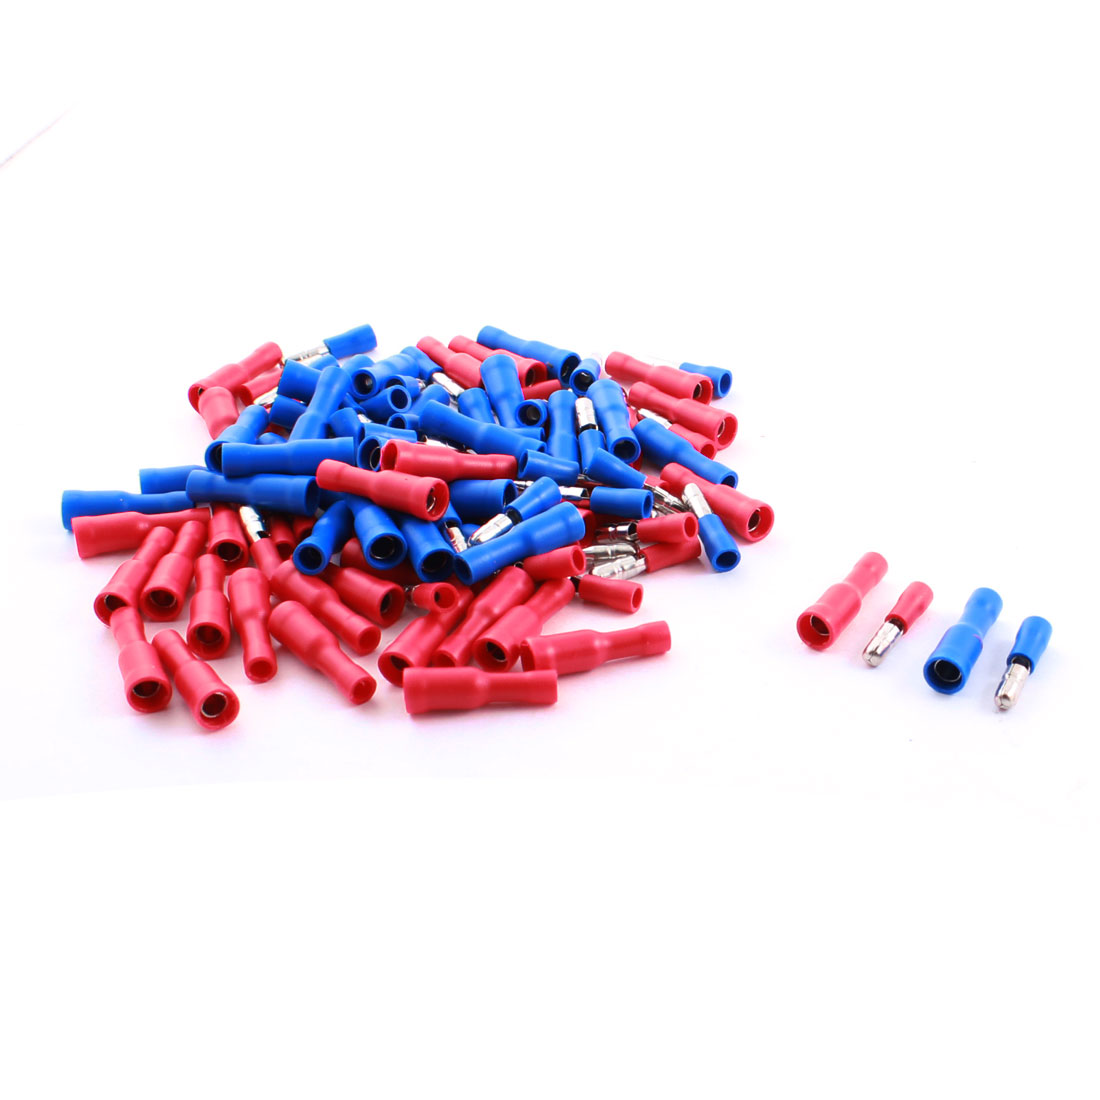 100Pcs 15A 16-14AWG Full Insulated Male Female Crimp Terminal Connector Red Blue